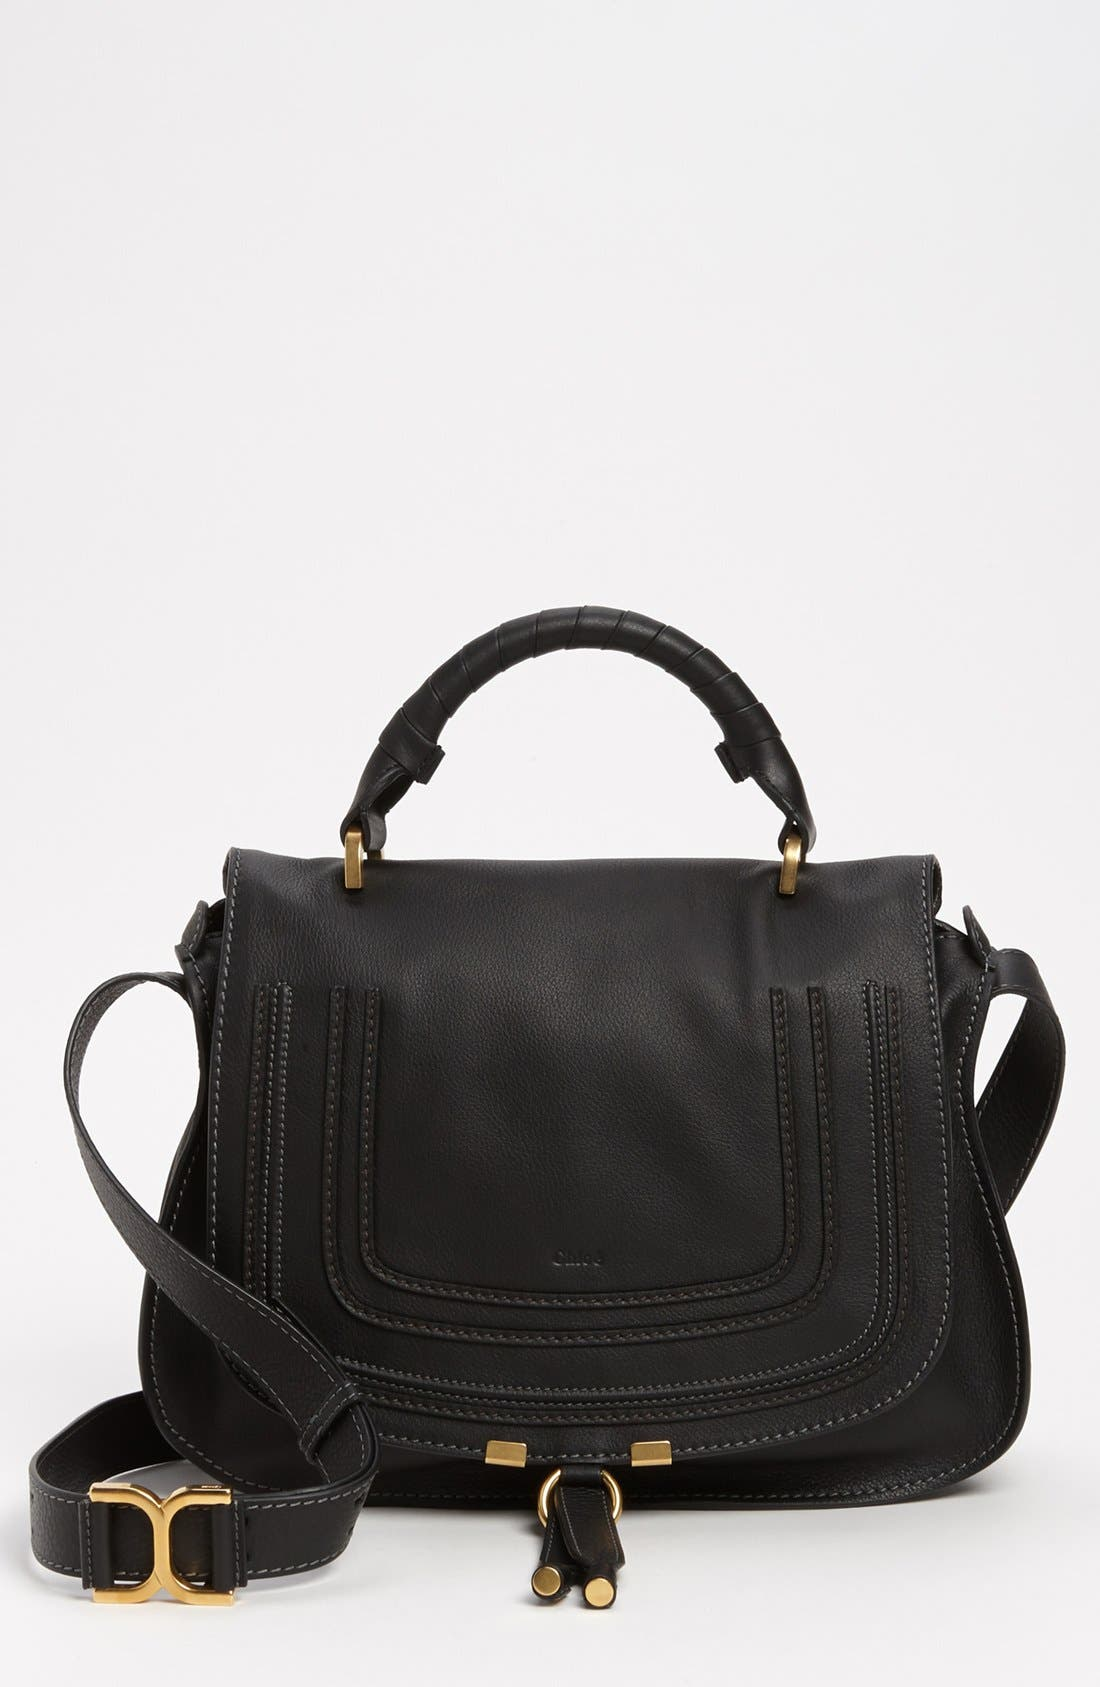 Alternate Image 1 Selected - Chloé 'Marcie' Top Handle Leather Satchel